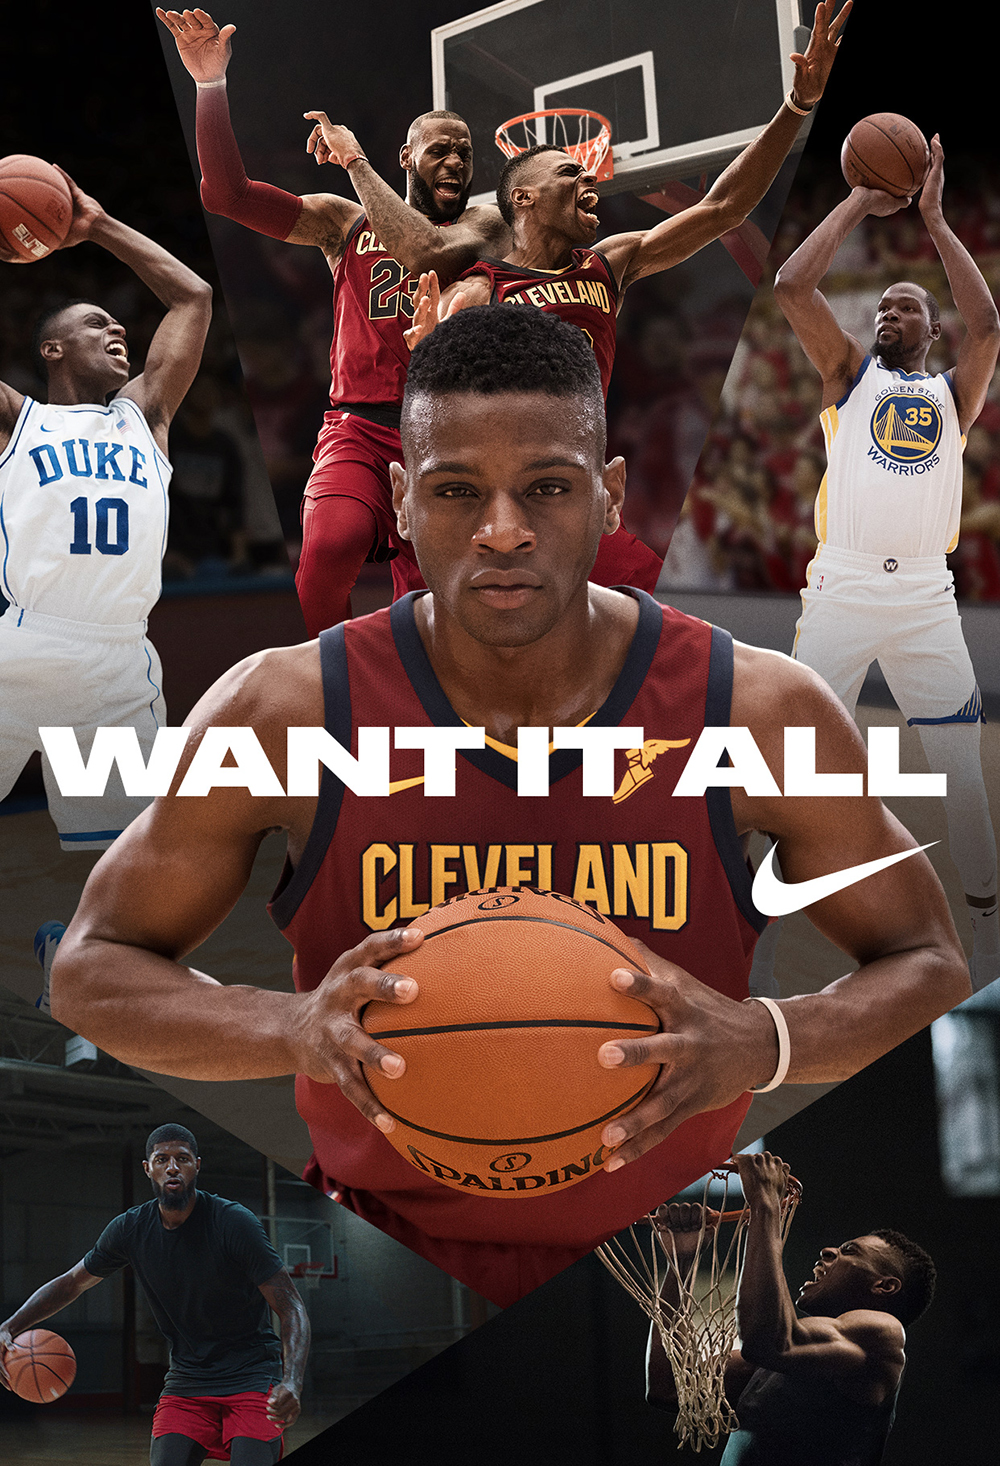 want it all - Nike